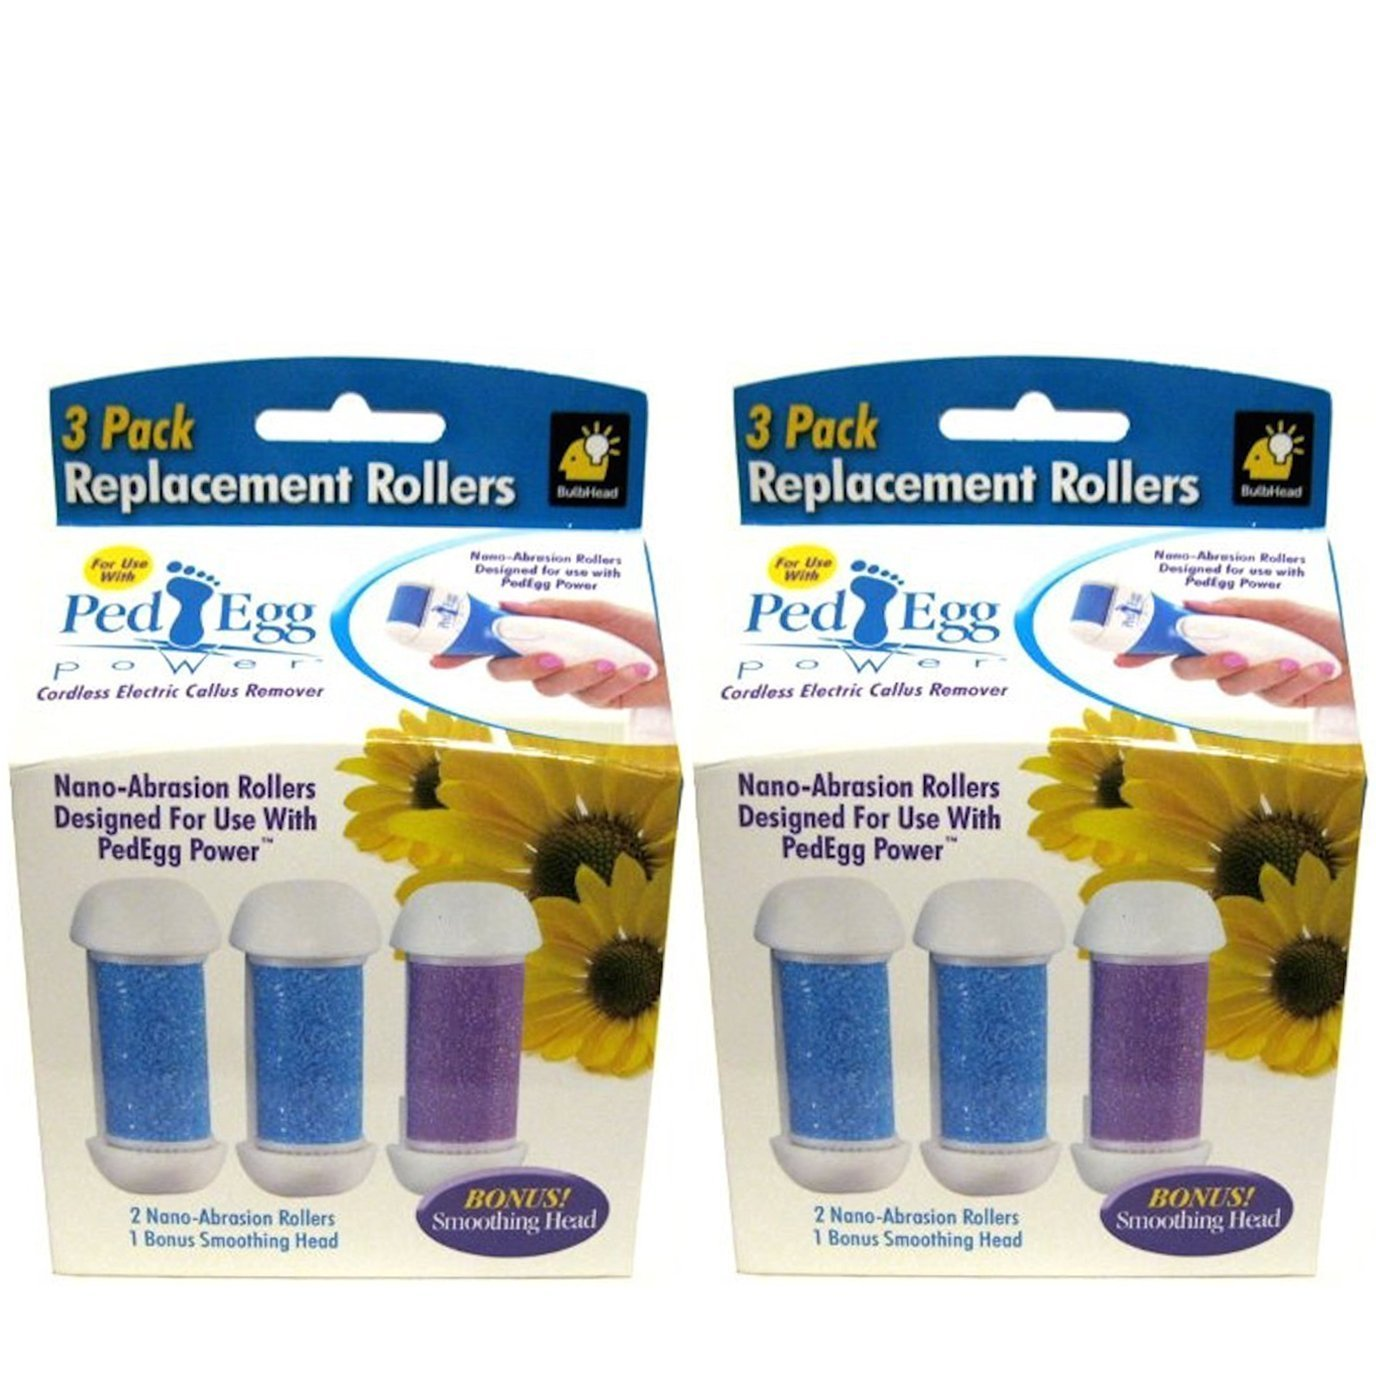 PedEgg Power Replacement Rollers by BulbHead - Retail Packaging - (2 Packs of 3)